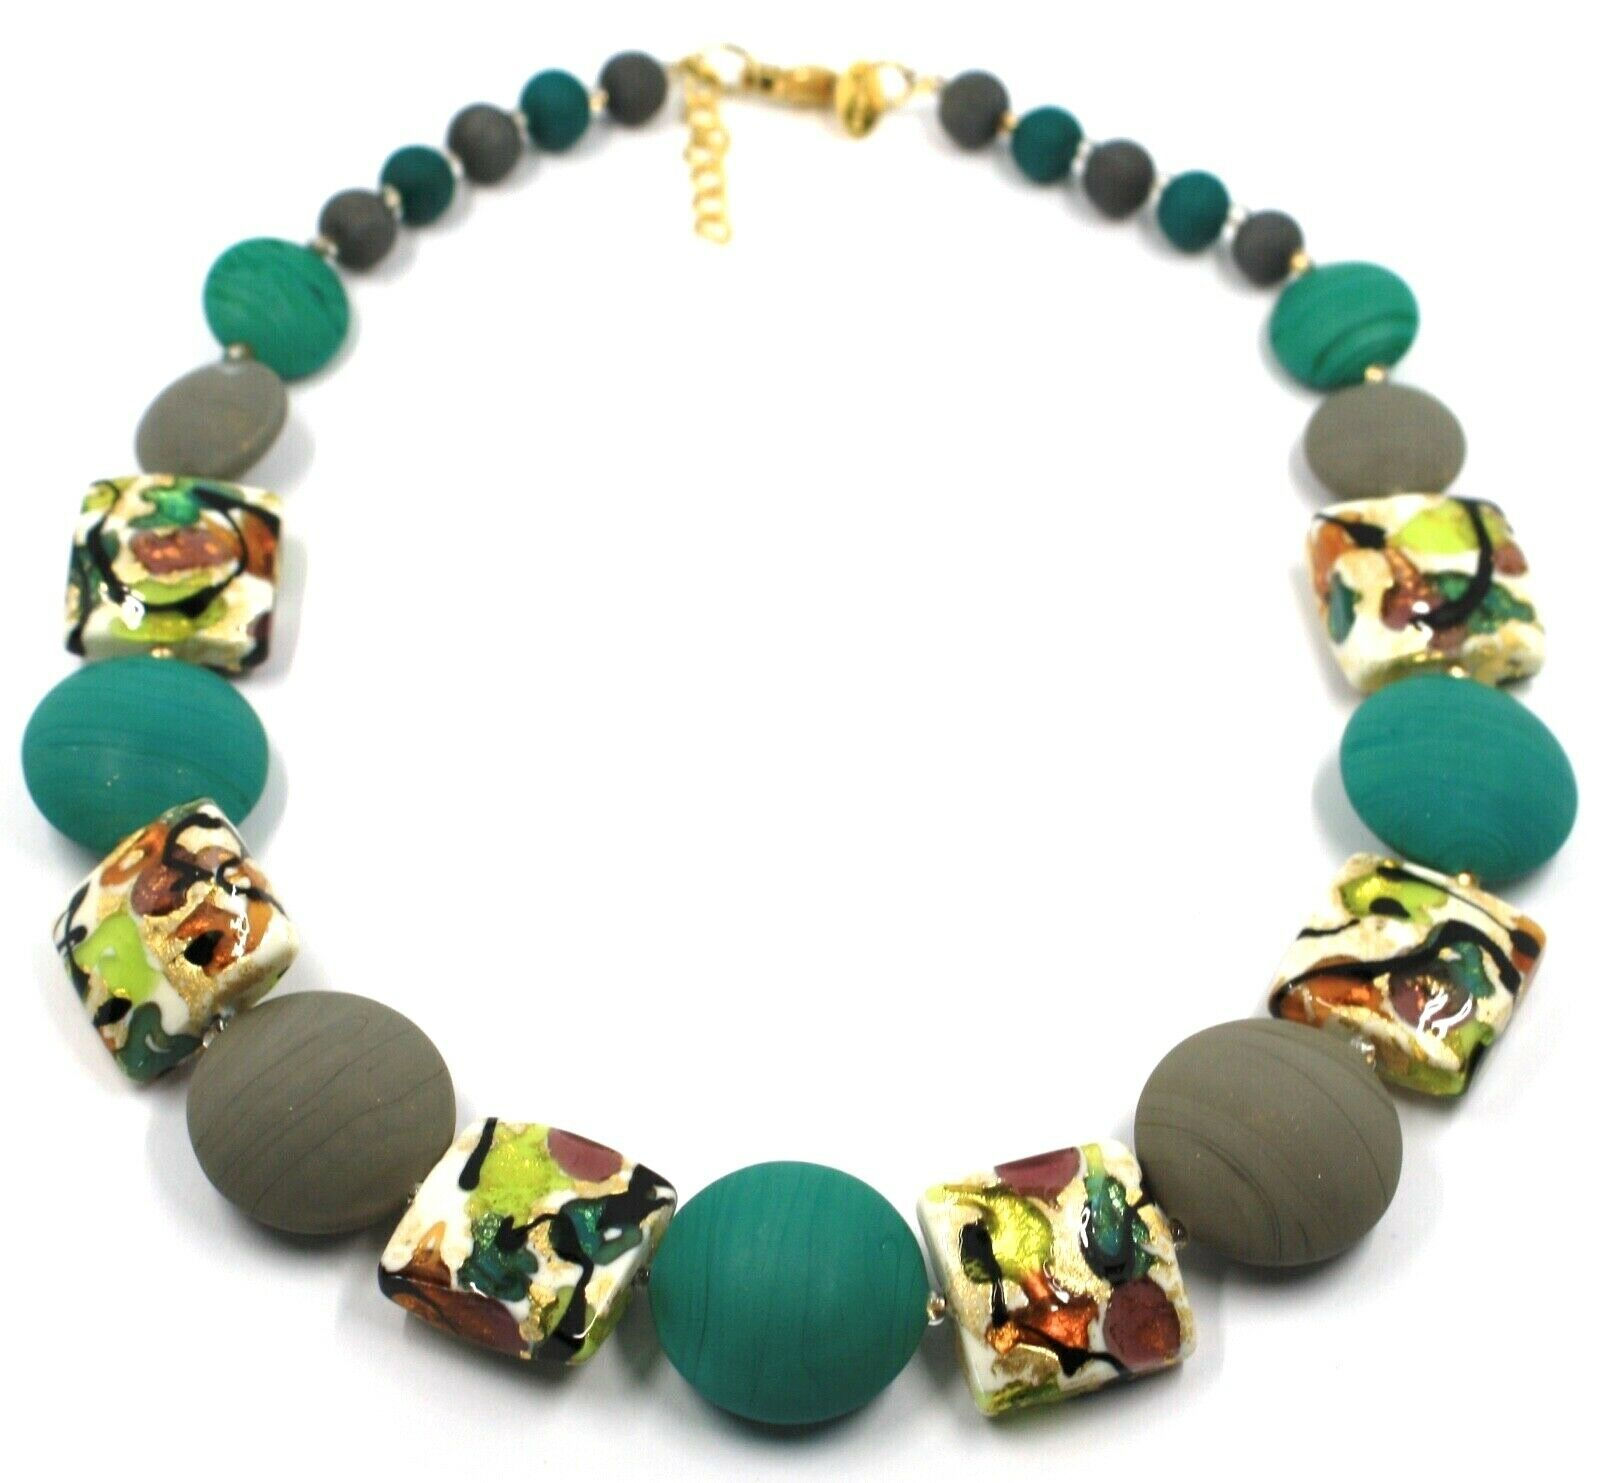 NECKLACE GREEN GREY SQUARE & DISC, MURANO GLASS, GOLD LEAF, MADE IN ITALY